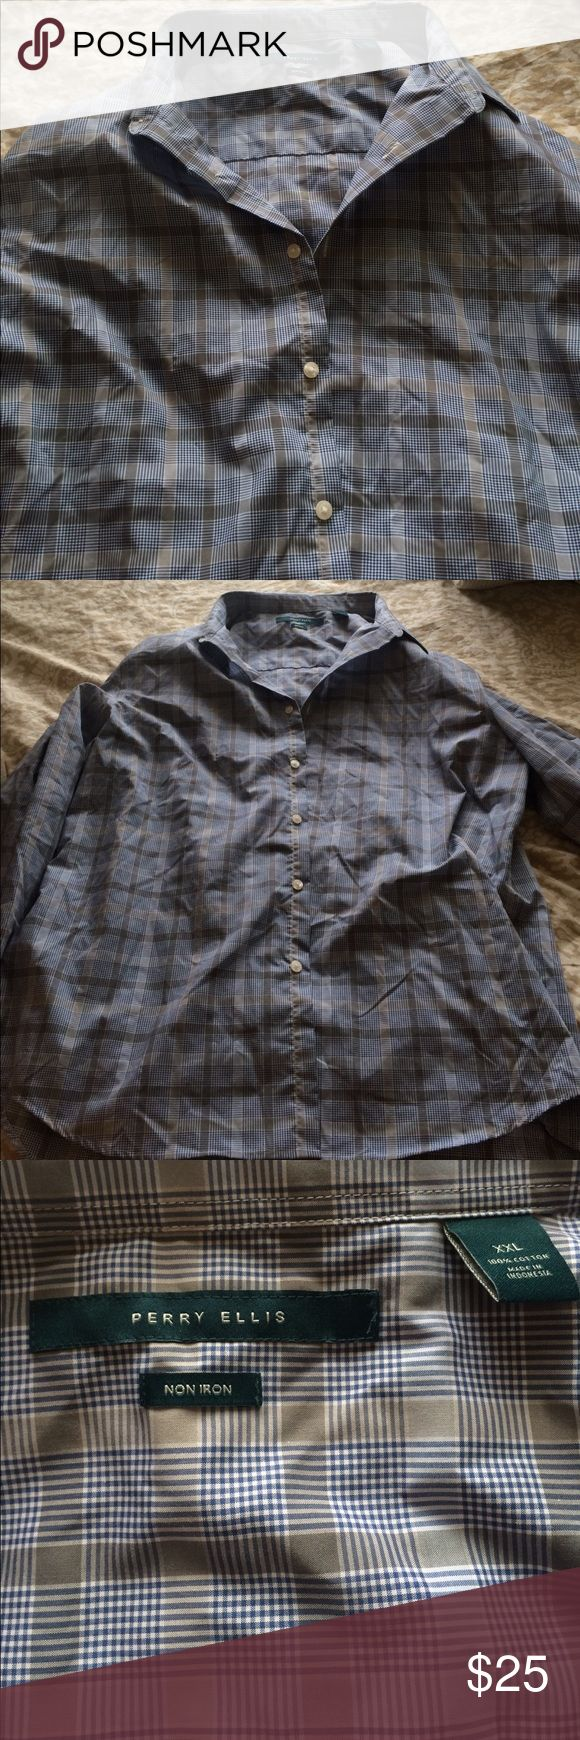 PERRY ELLIS non iron dress shirt - WORN ONCE EUC PERRY ELLIS dress shirt in sharp gray and blue plaid. Non iron and machine washable means easy maintenance. Worn once before he changed his mind on it!! Perry Ellis Shirts Dress Shirts